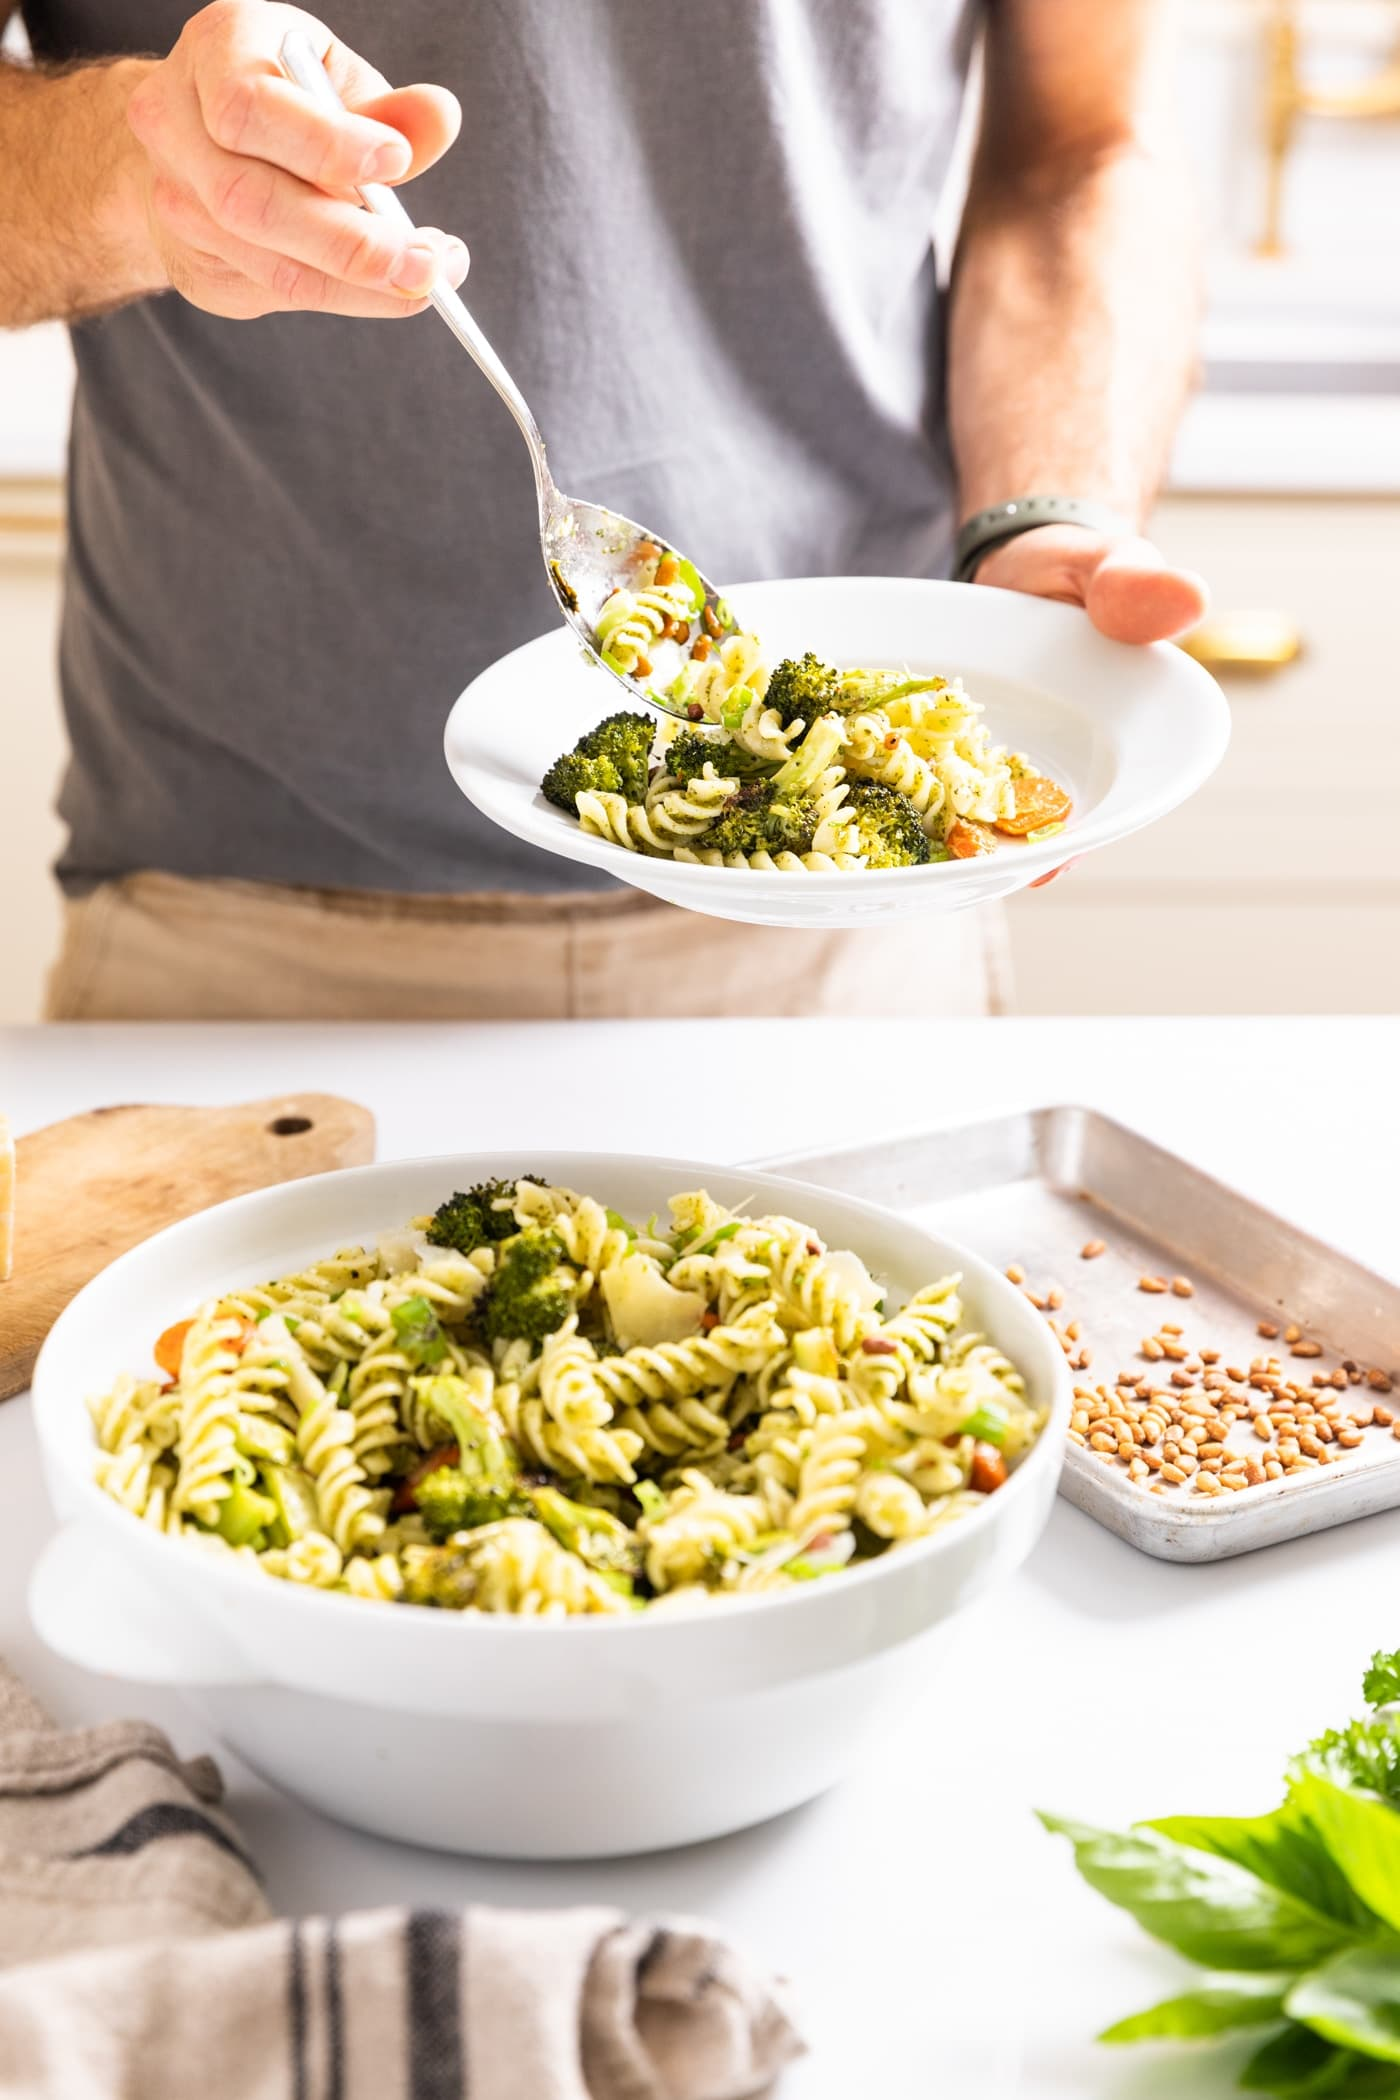 Hand holding white plate and scooping pasta salad onto plate from white bowl all on white countertop with tan cabinets in background